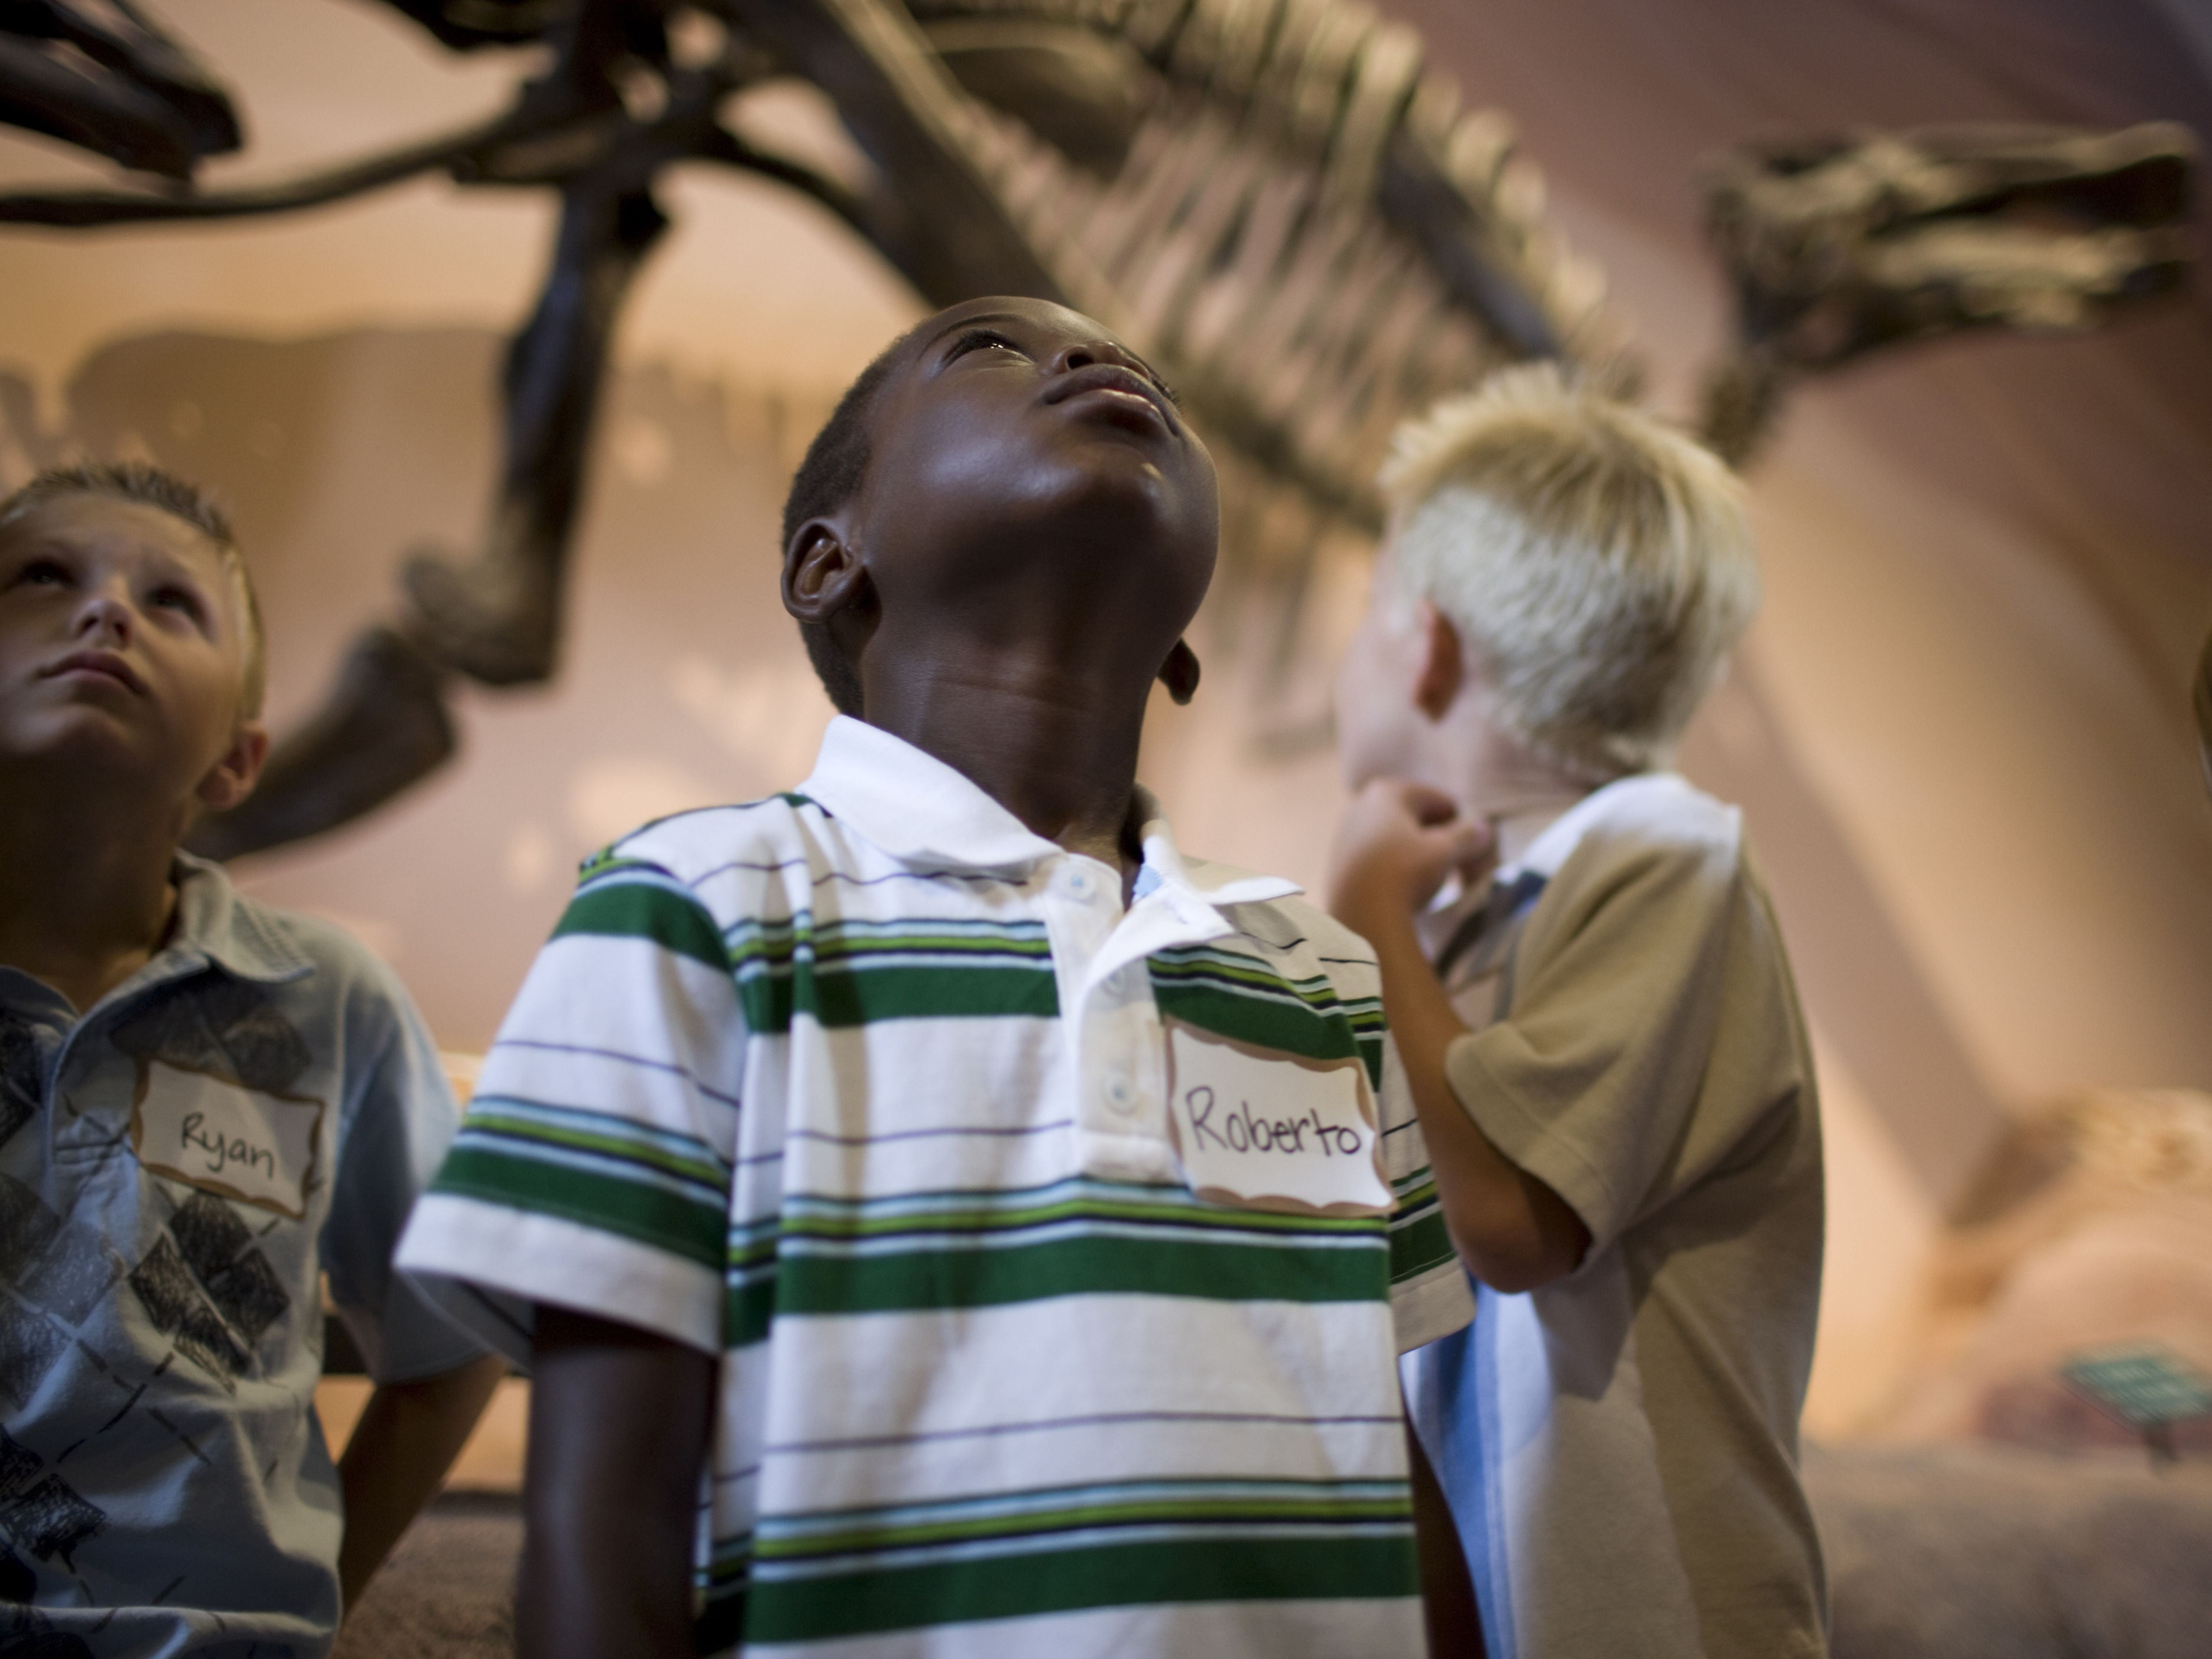 boys in museum of dinosaurs